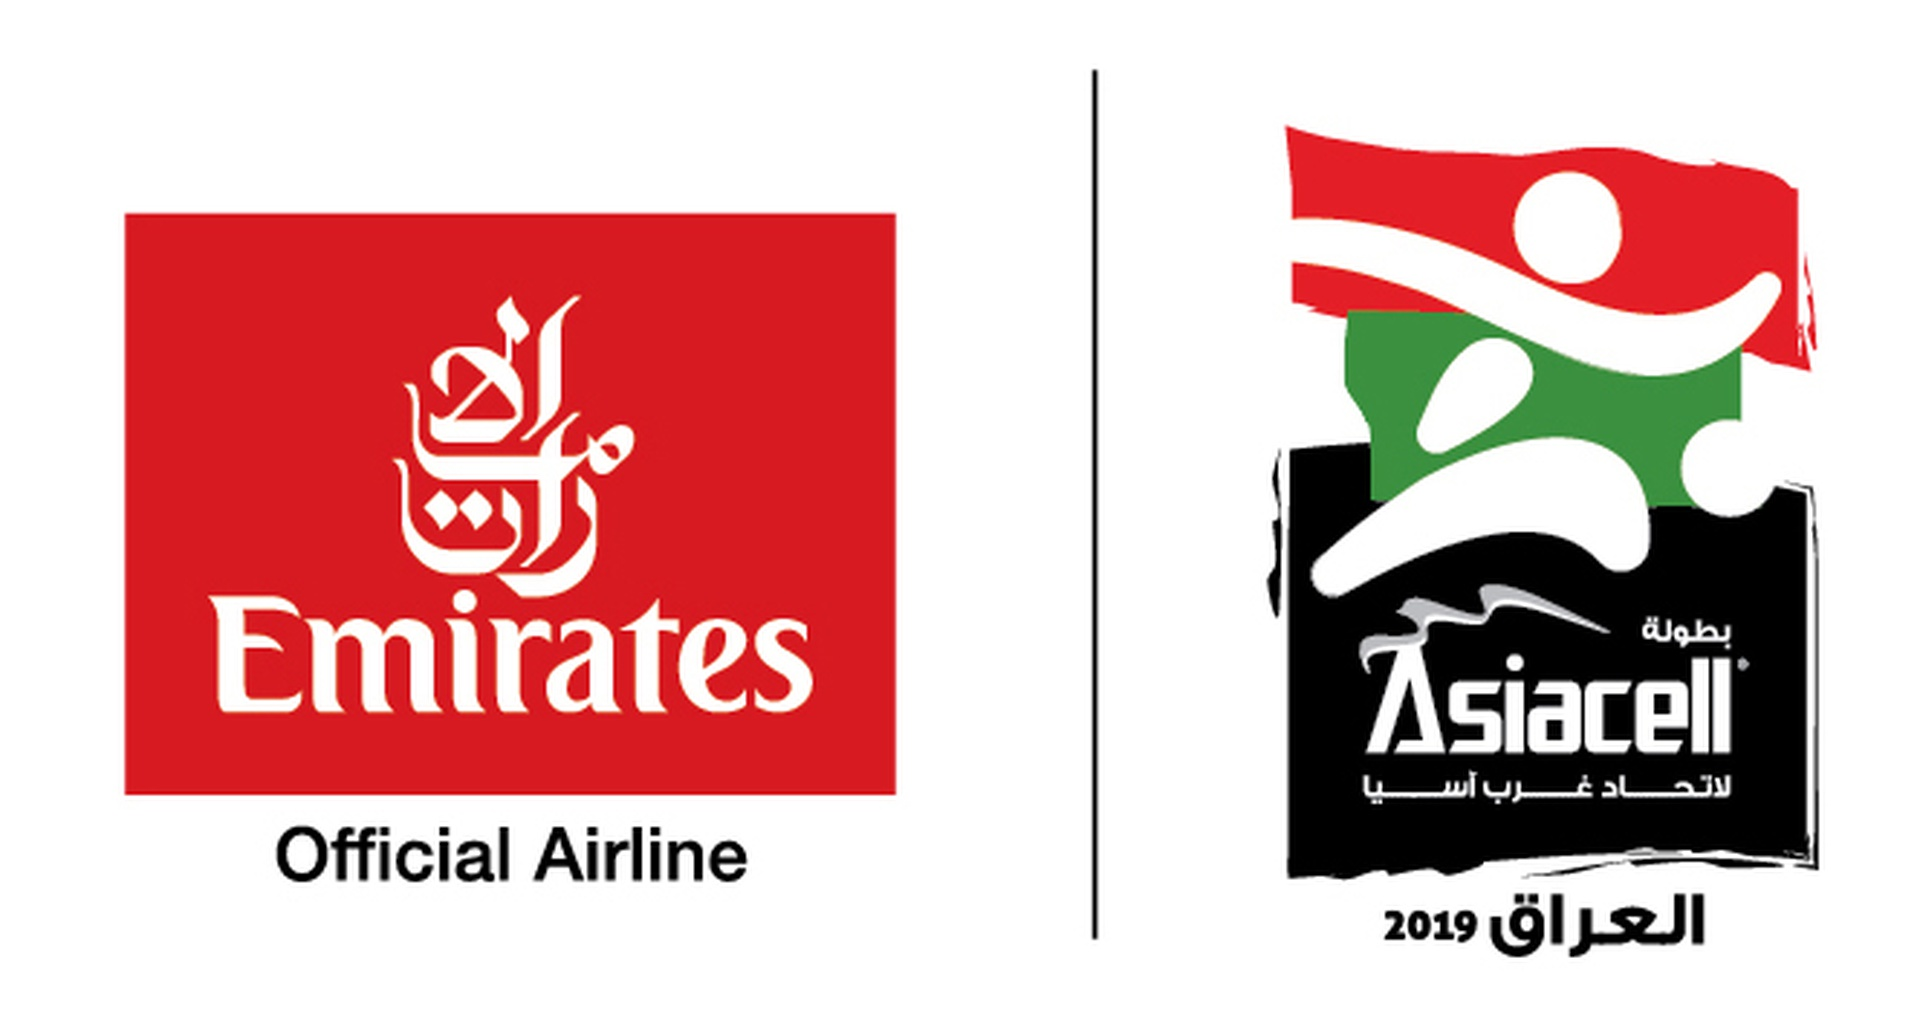 Emirates Partners with the West Asian Football Federation Championship